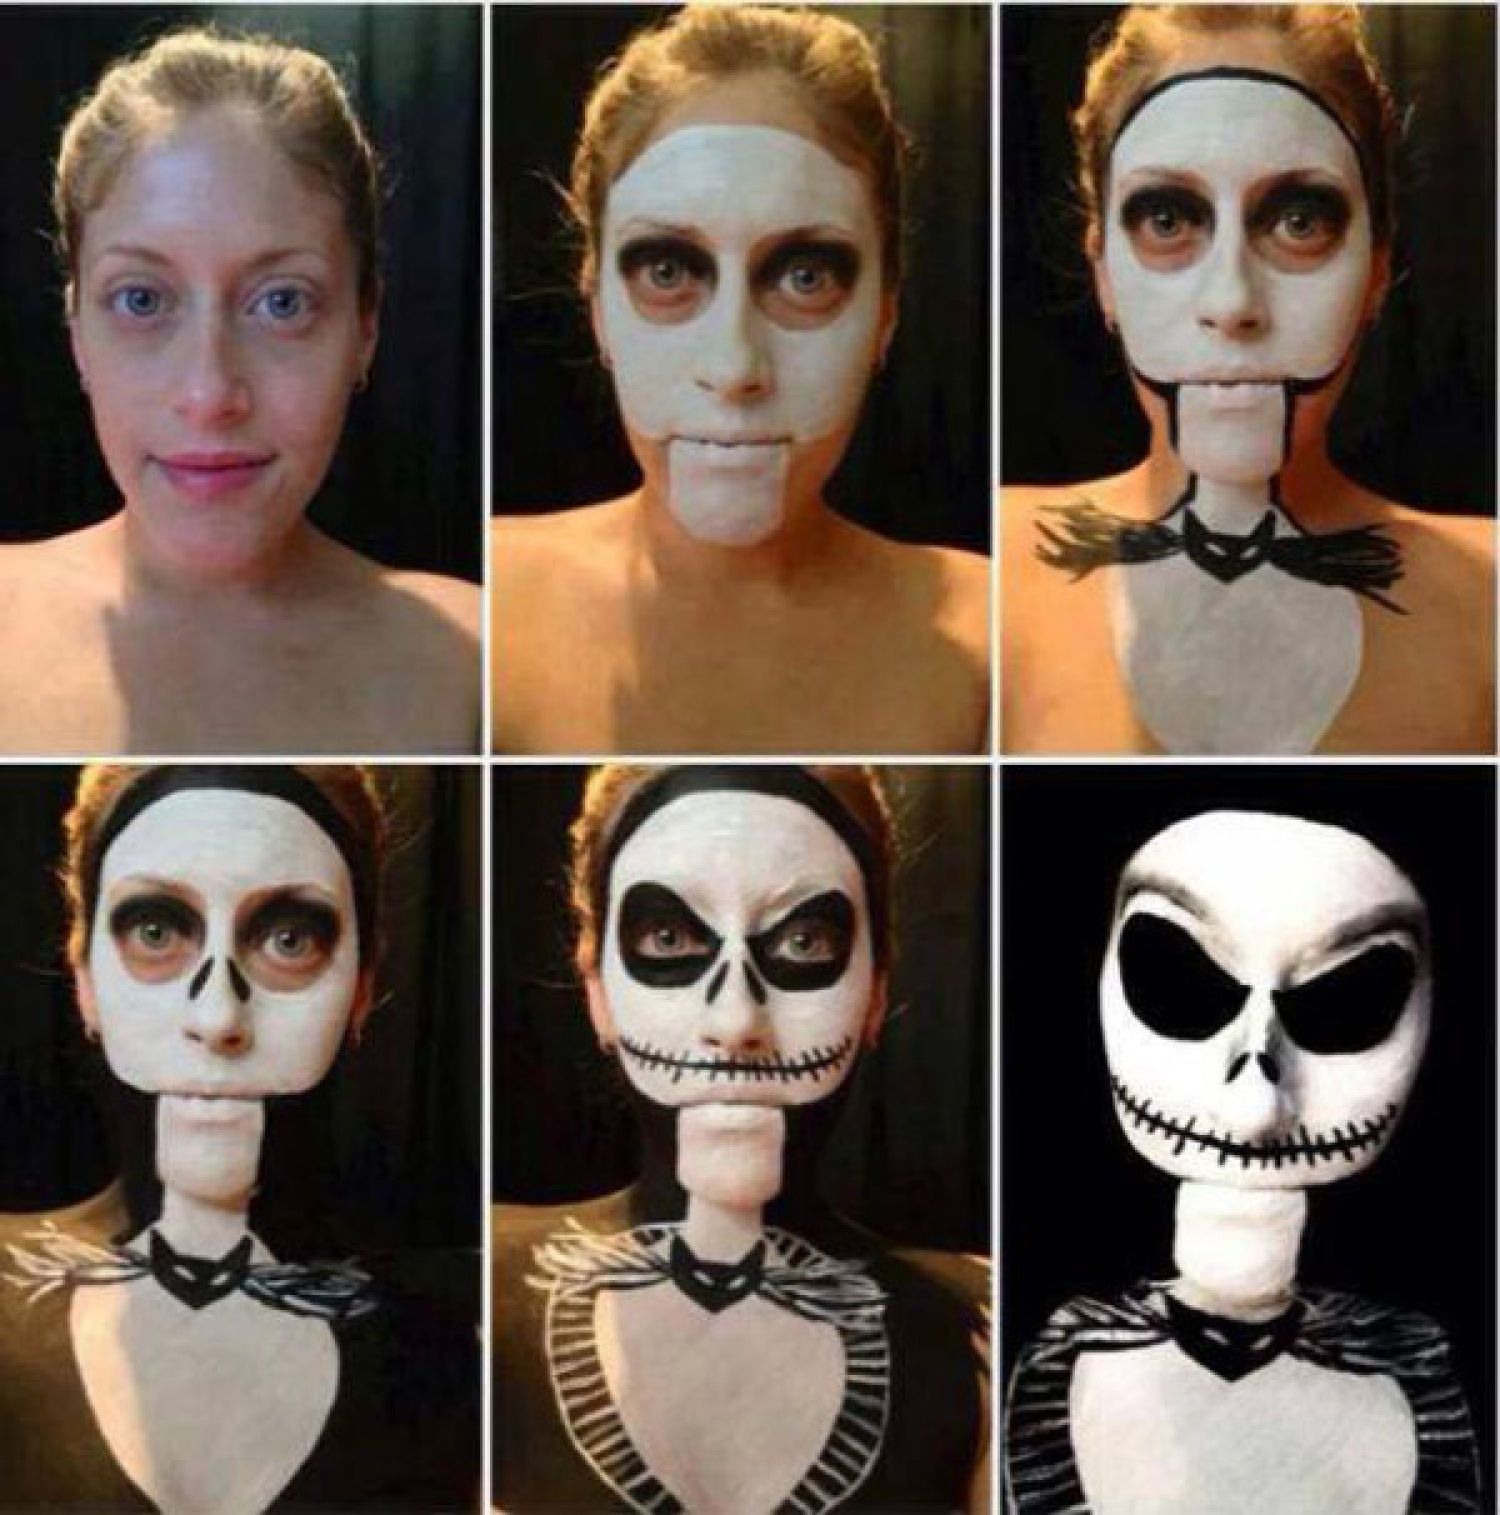 Jack skellington by carly paige makeup found on 10 best halloween jack skellington by carly paige makeup found on 10 best halloween makeup tutorials blog baditri Image collections